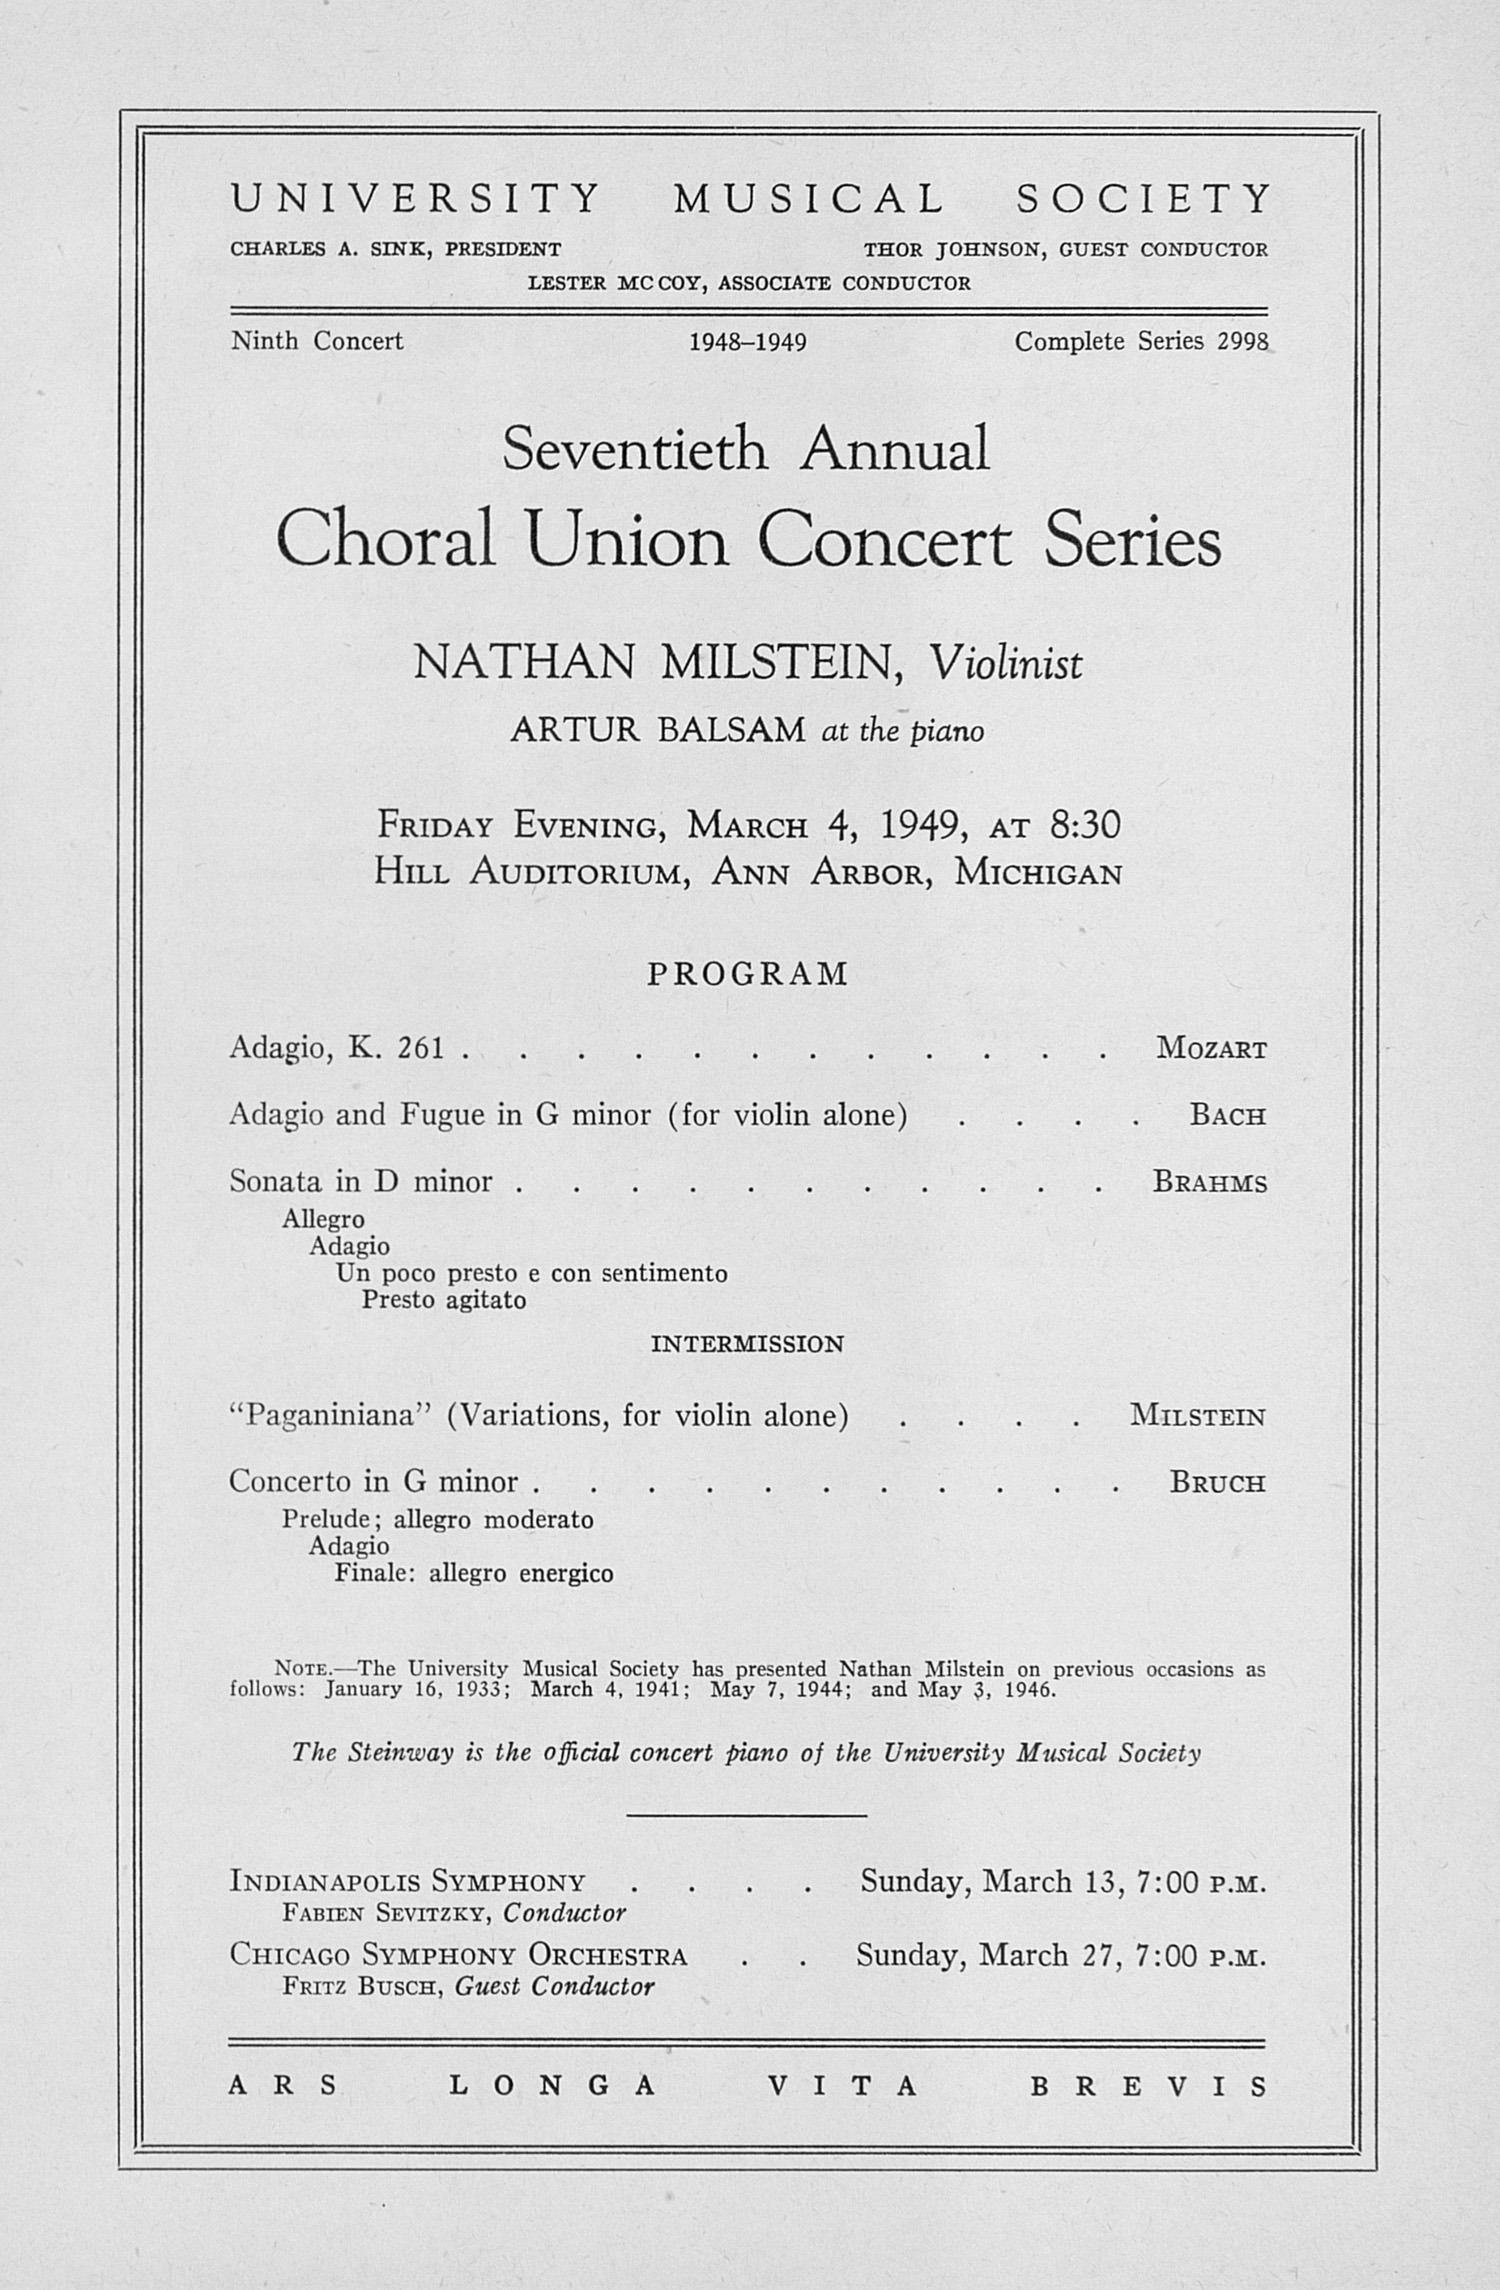 UMS Concert Program, March 4, 1949: Seventieth Annual Choral Union Concert Series -- Nathan Milstein image